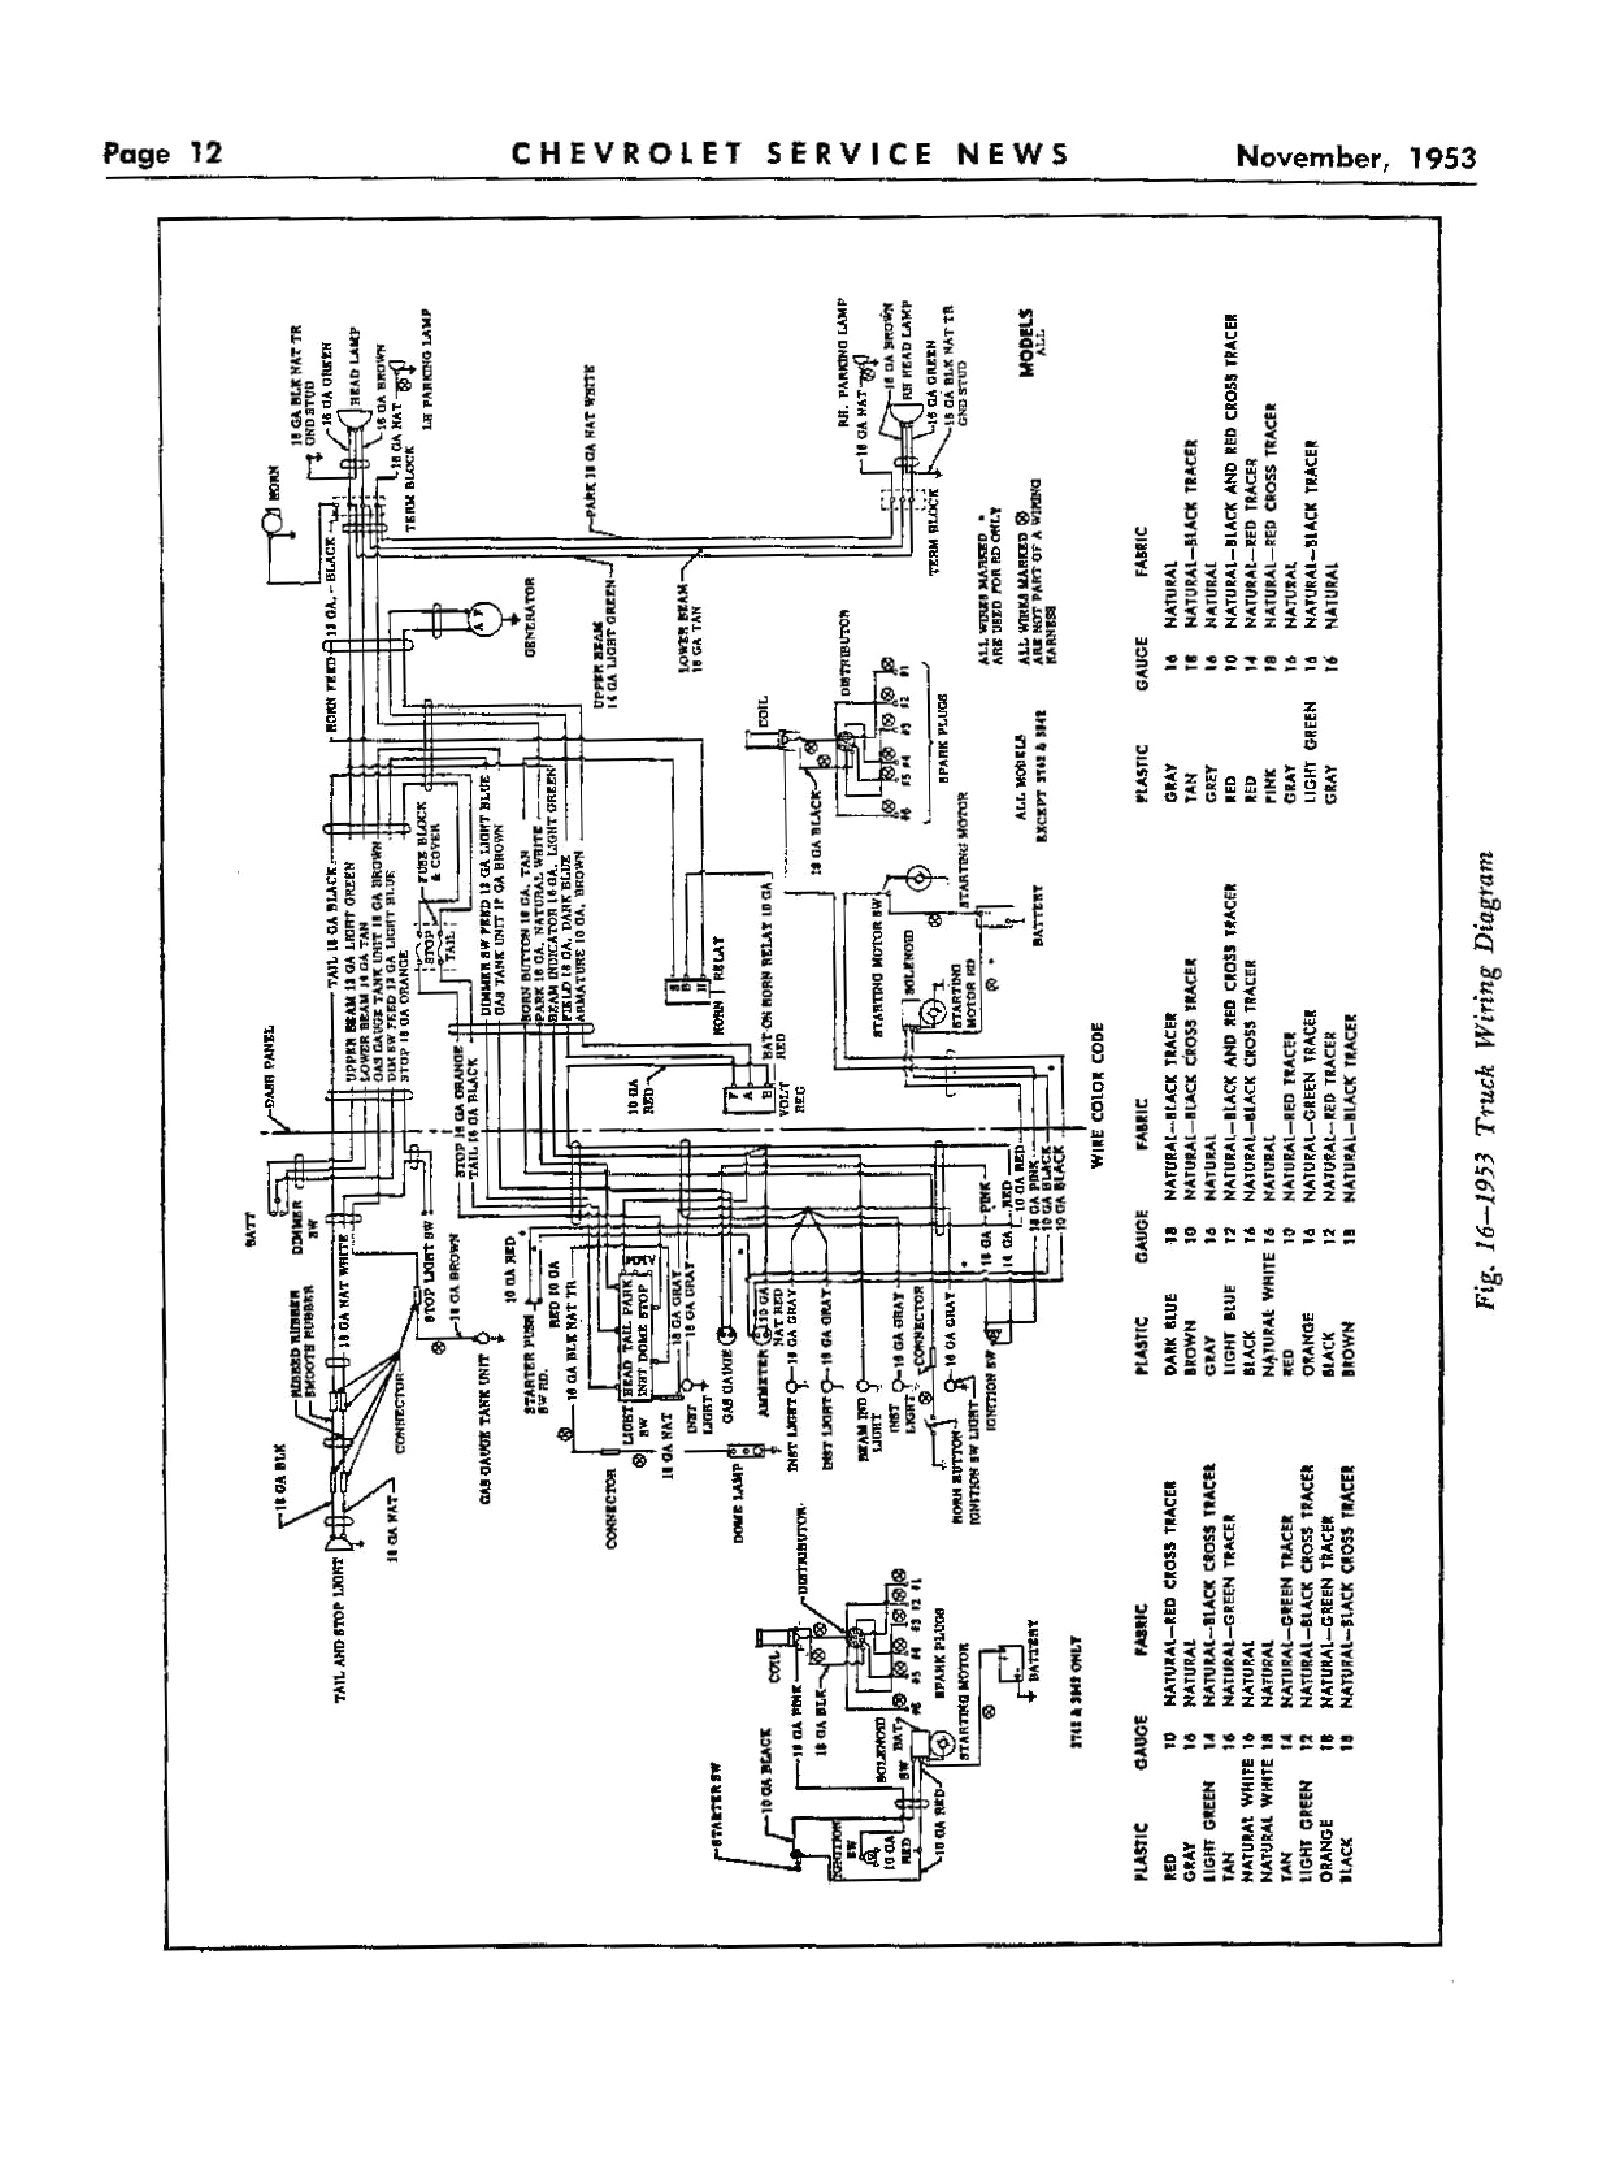 1956 Gmc Wiring Diagram Wiring Diagram Motor Motor Frankmotors Es